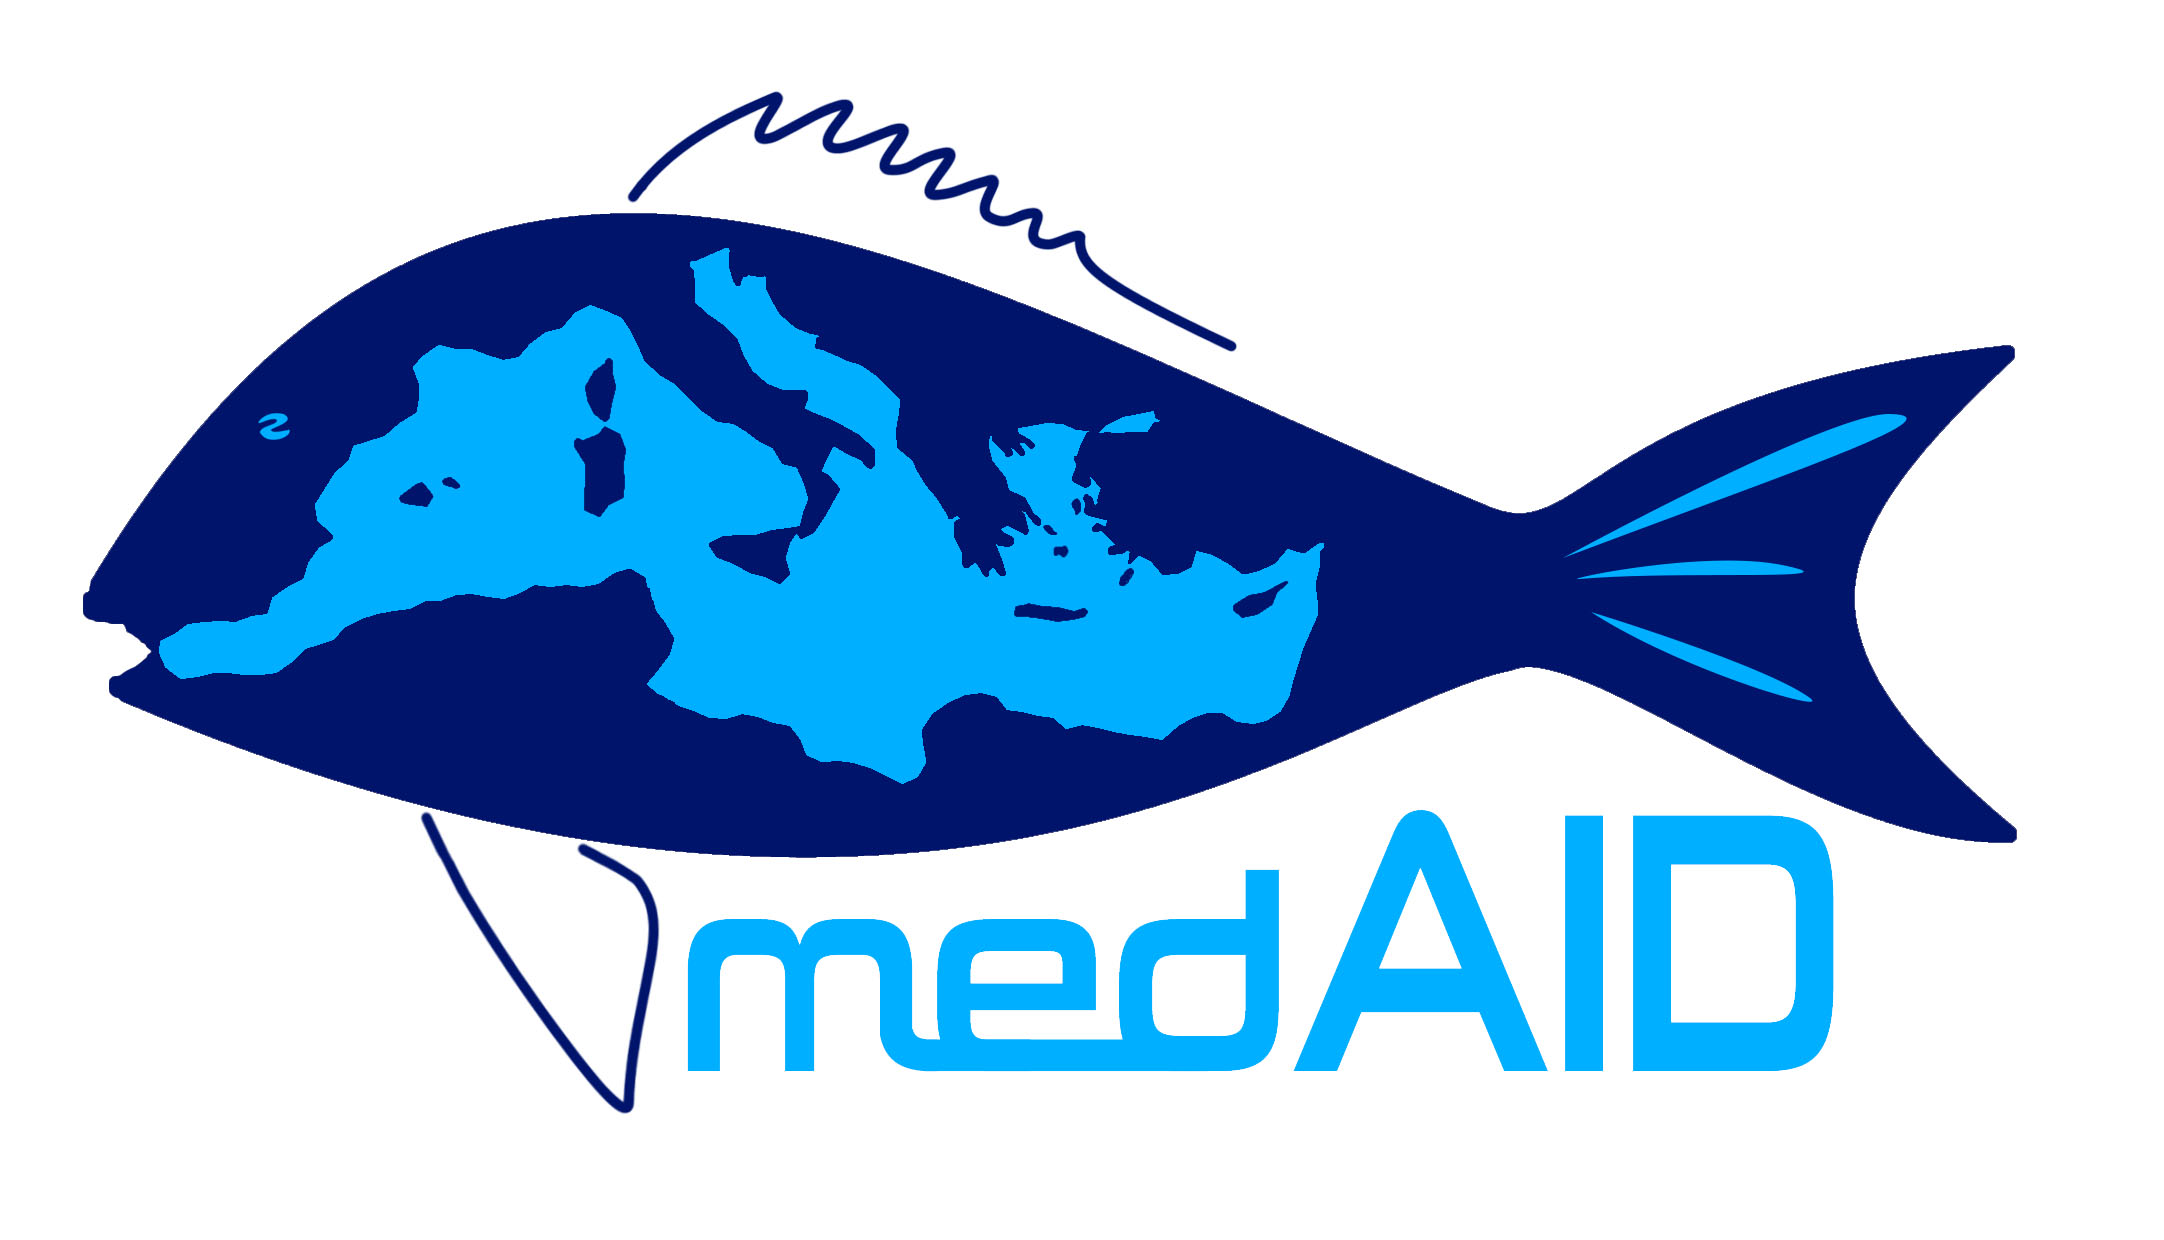 Medaid Mediterranean Aquaculture Integrated Development Logo